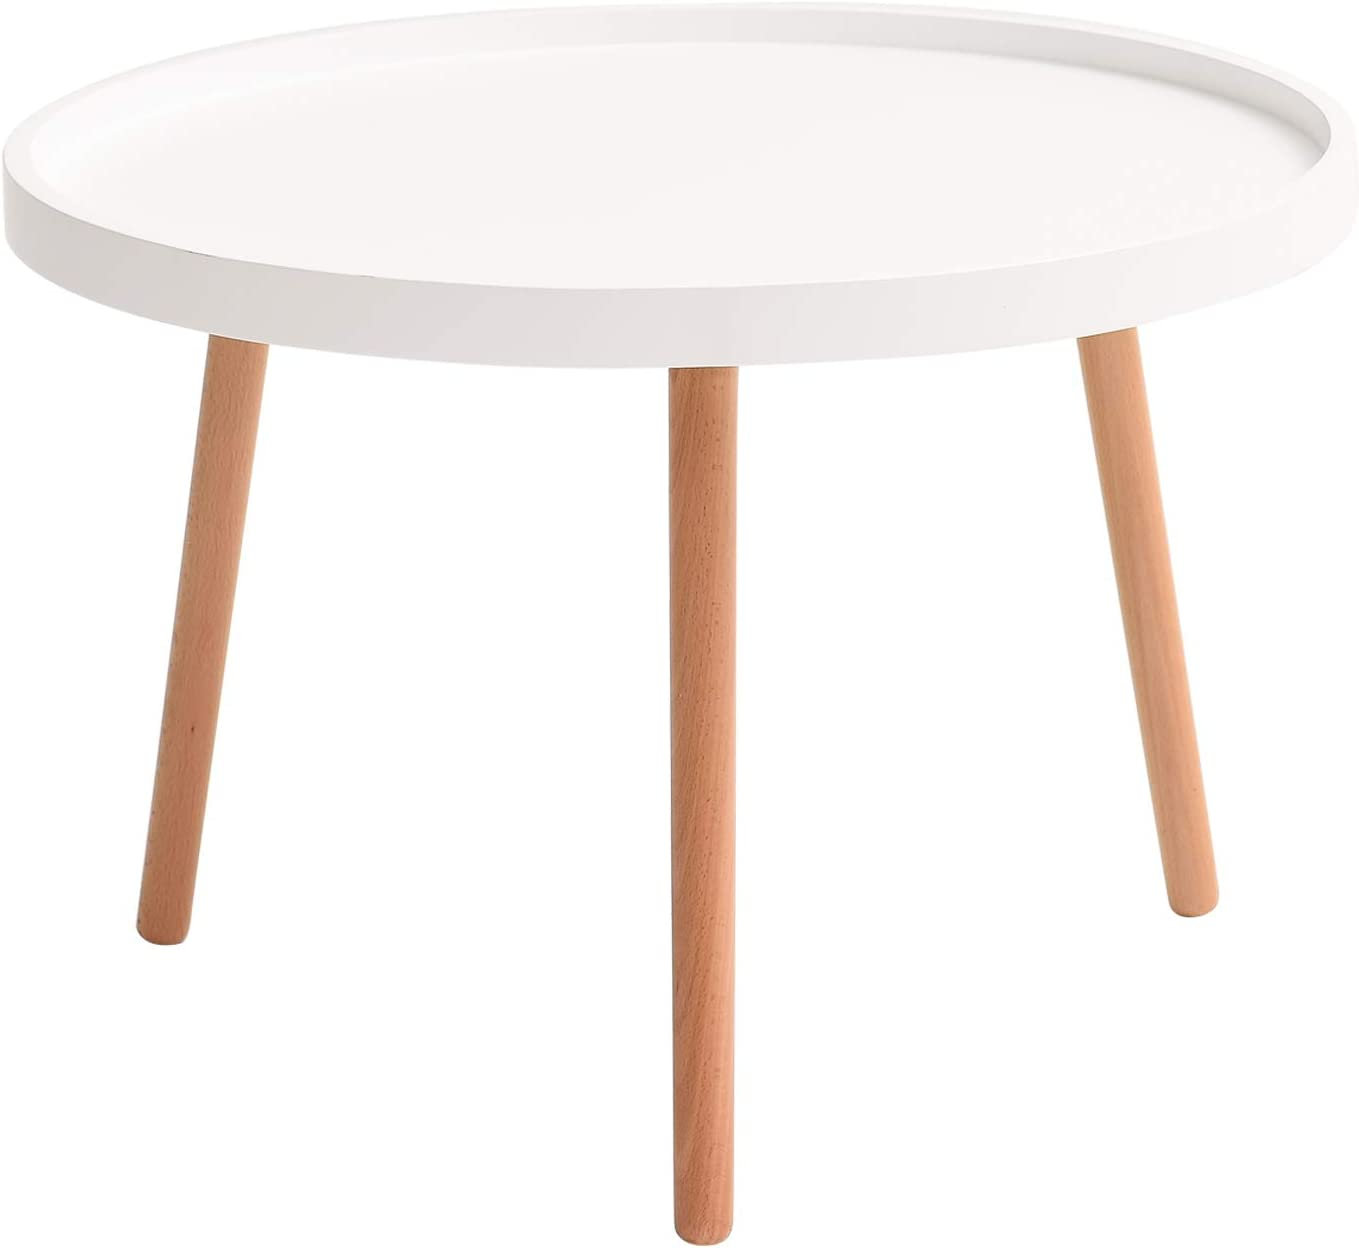 IBUYKE Coffee Table, MDF Panels and Beech Legs End Tables, Modern Furniture Decor Round Side Table for Living Room Balcony Home and Office, Large : Φ 28.15, White, URF-991